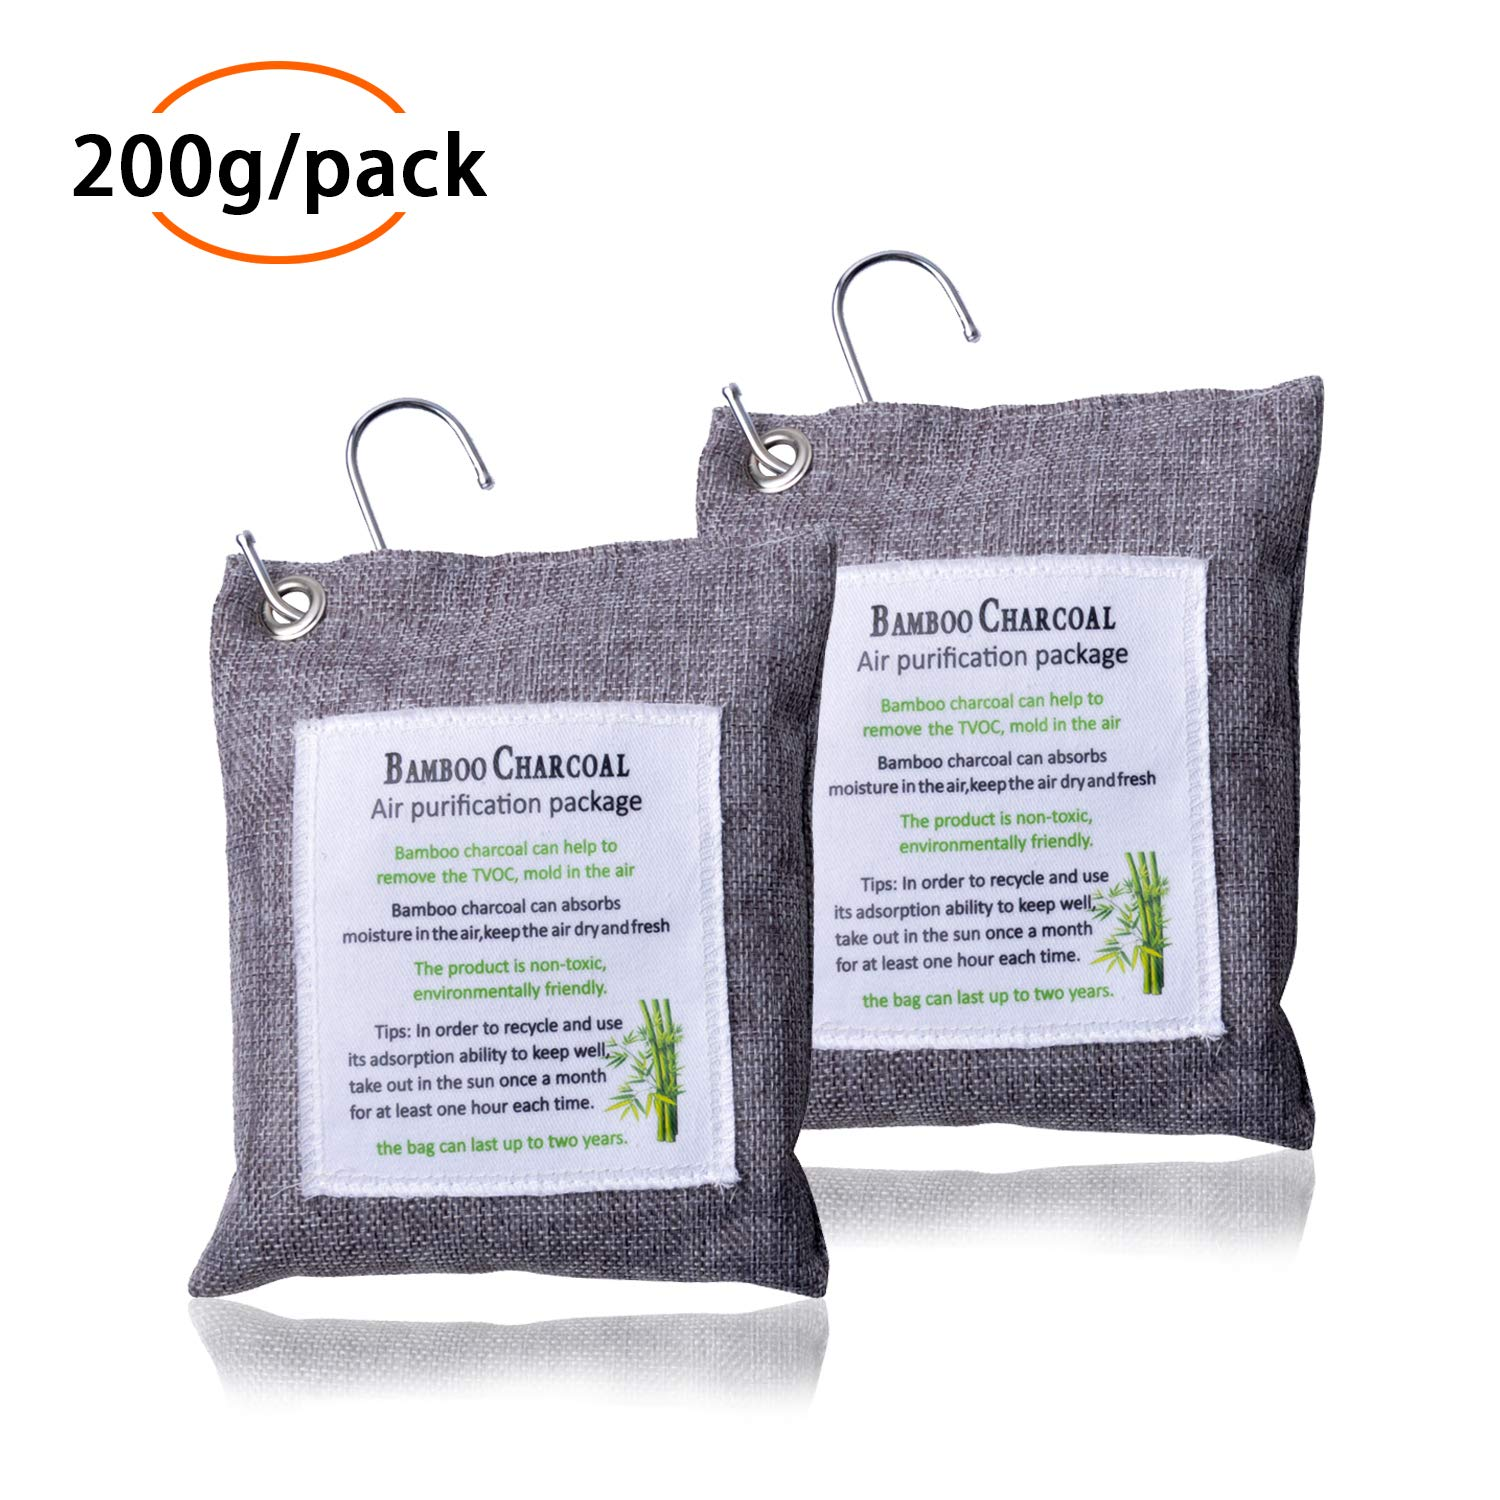 MIKKUPPA 2 Pack Air Purifier, Charcoal Air Freshener Bag Odor Eliminator for Cars, Closets, Bathrooms and Pet Areas, Include 2 Hooks 200g/Pack